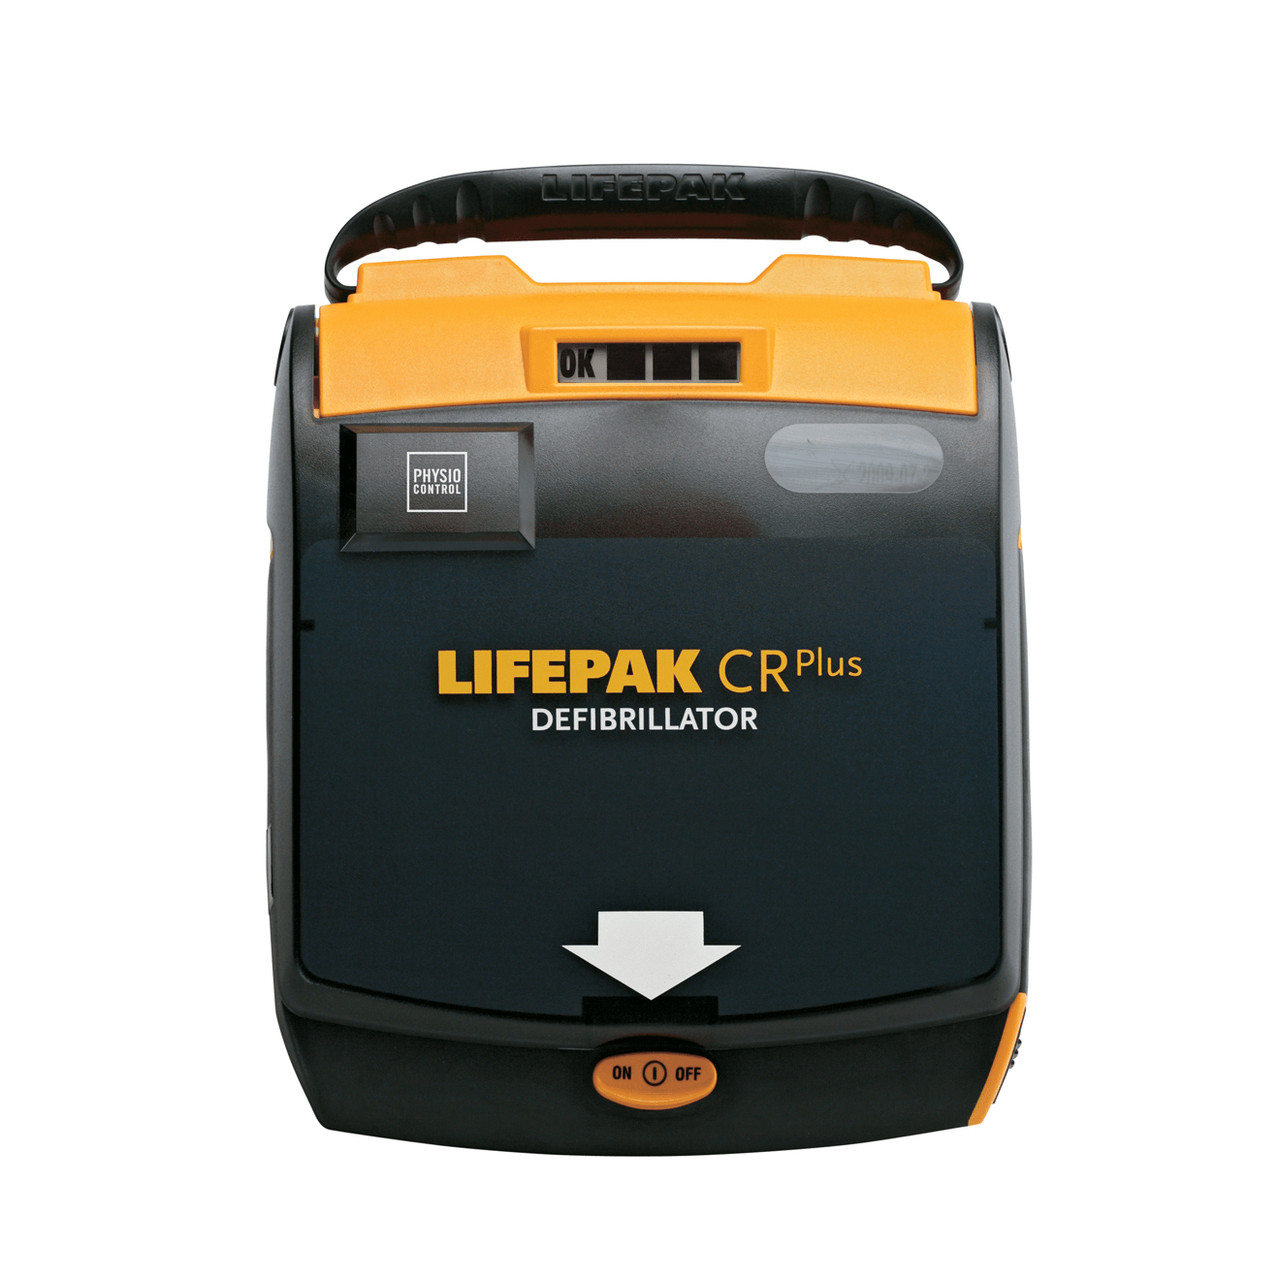 Physio-Control LIFEPAK CR Plus AED - fully automatic